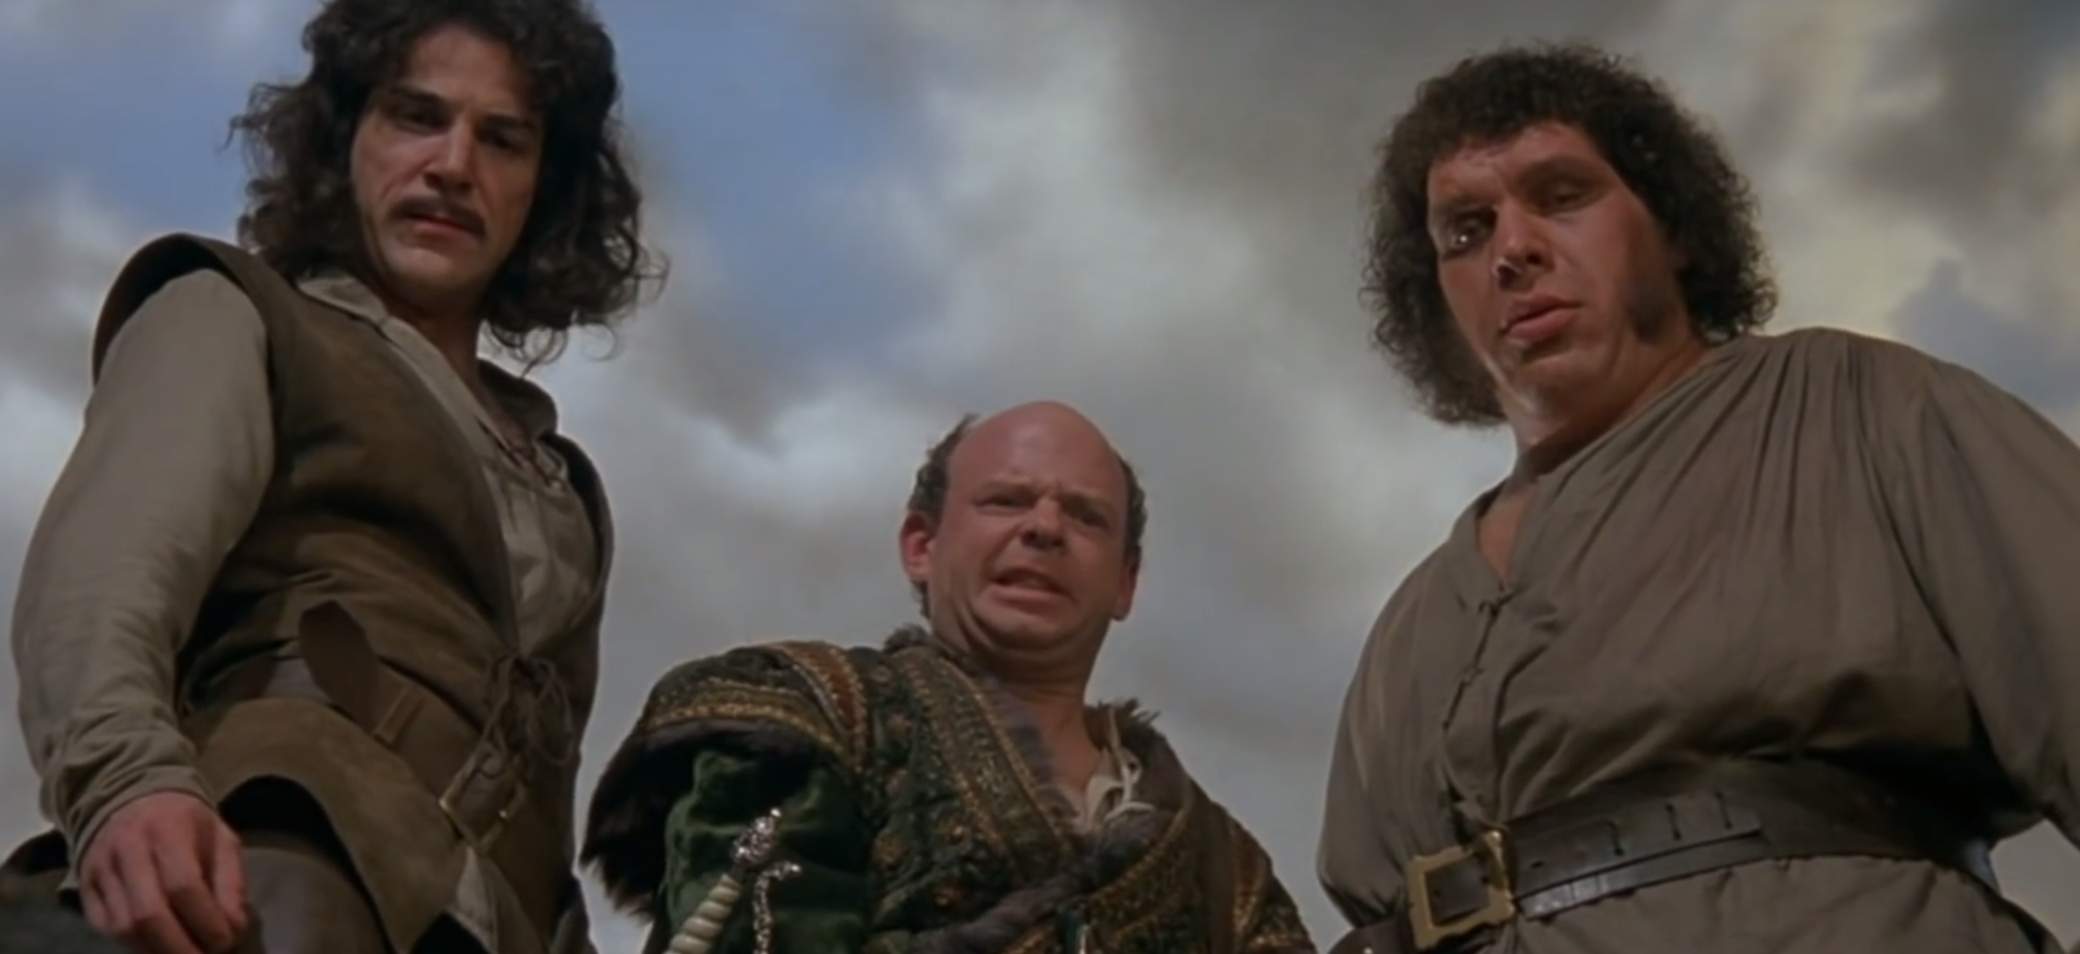 Inconceivable! – The Princess Bride Series (part 1)